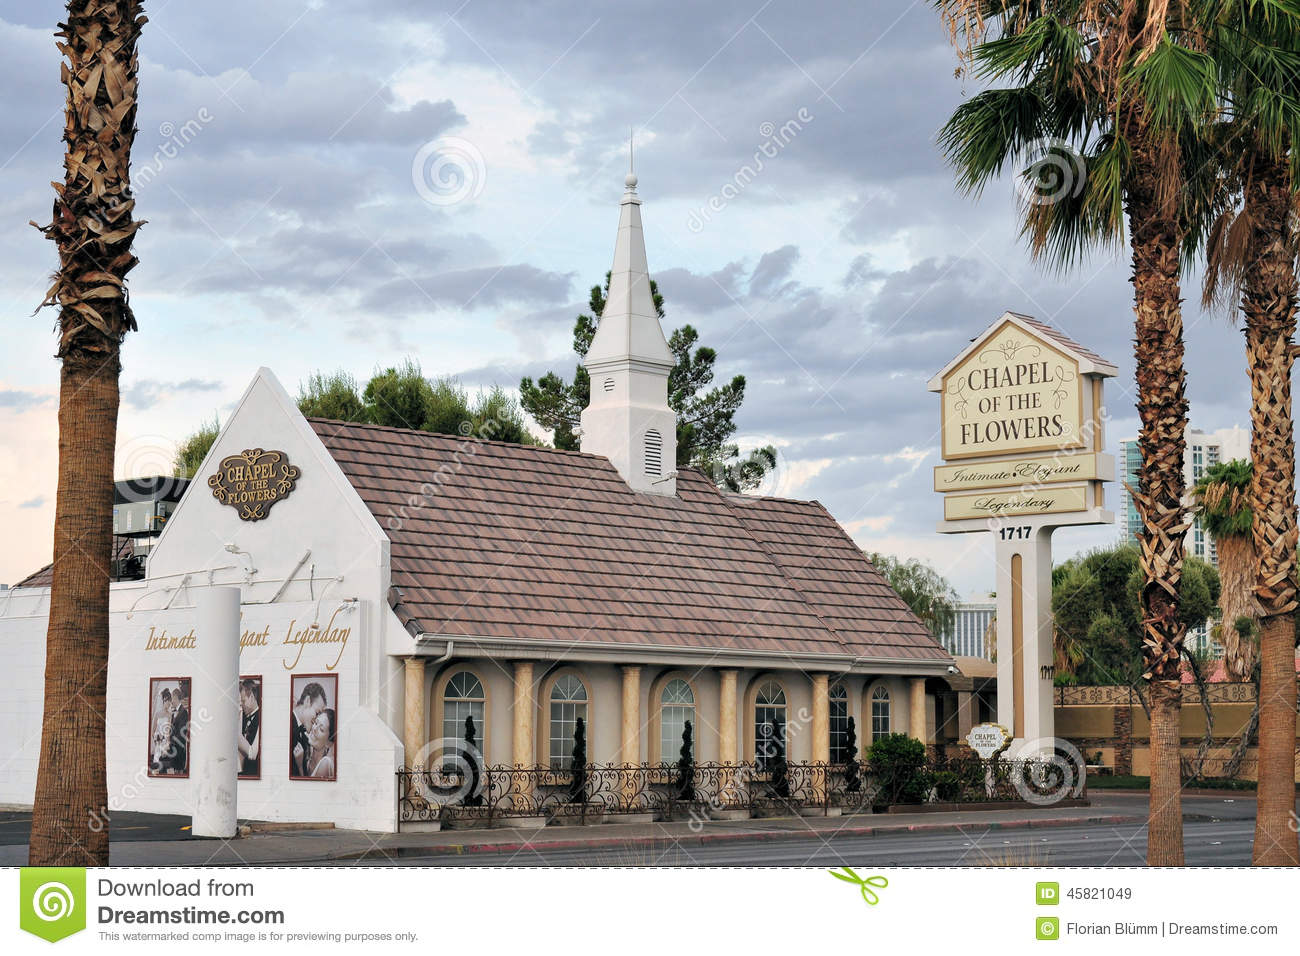 weddings wedding chapel las vegas Weddings